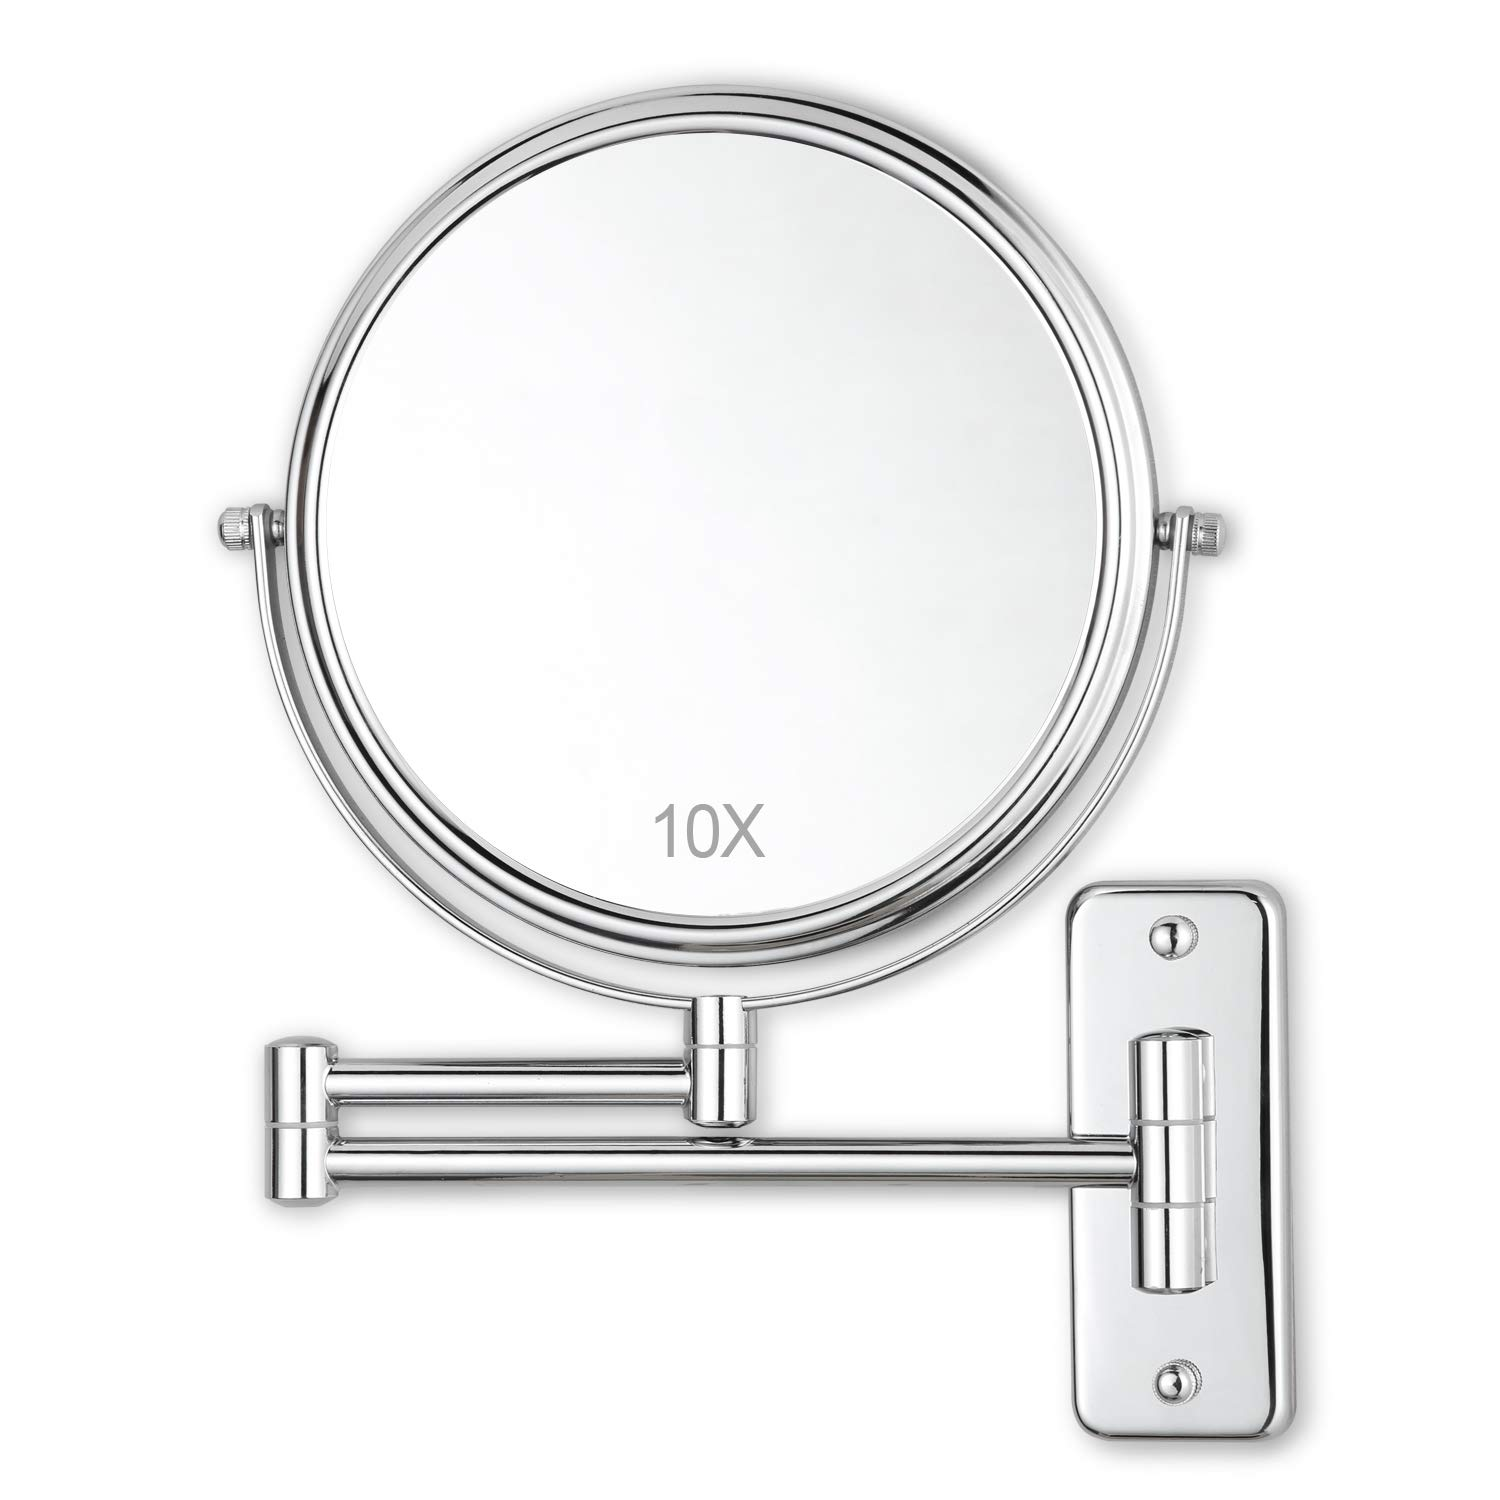 DECLUTTR 8 Inch Wall Mounted Makeup Mirror with 10x Magnification, Double Sided Vanity Magnifying Mirror for Bathroom, Chrome Finished